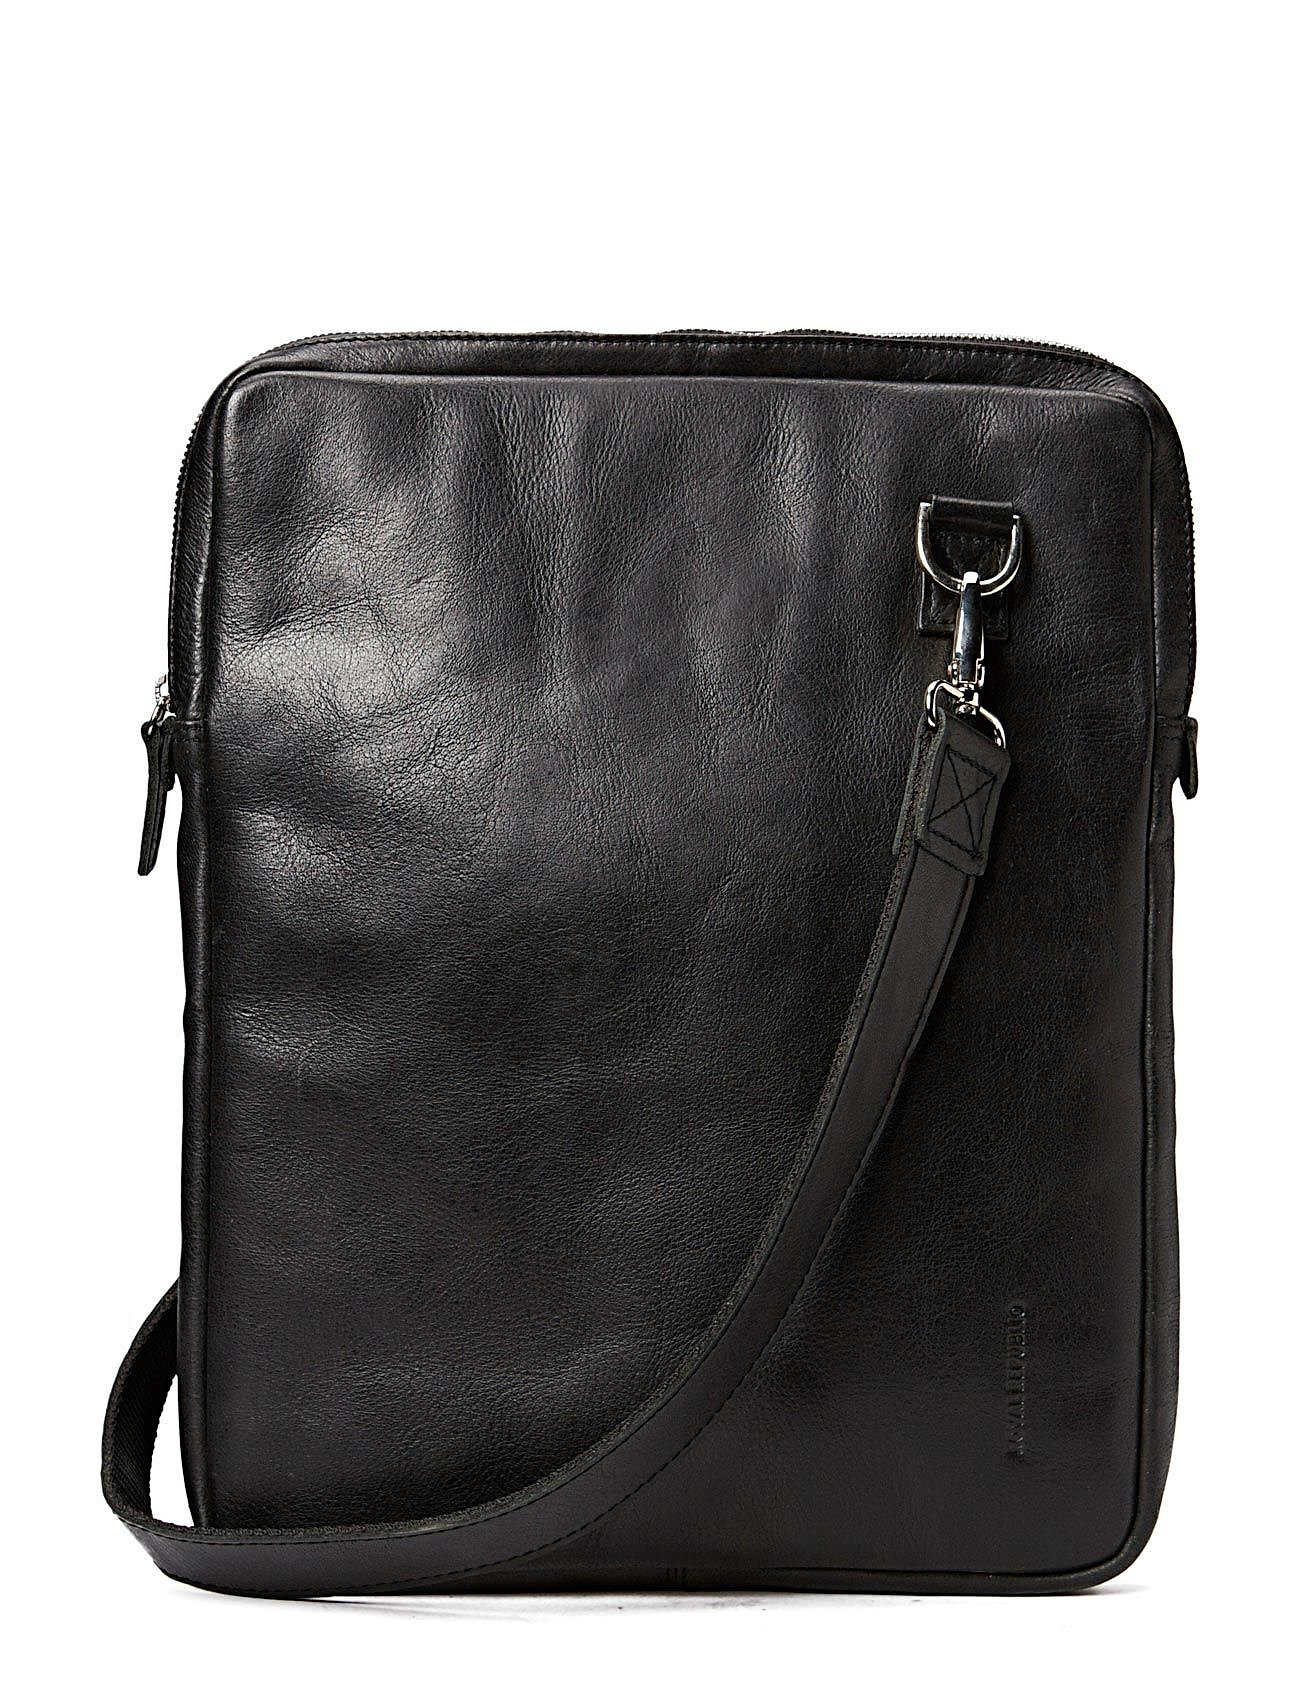 Royal RepubliQ Laptop Cover w/strap 16inch - BLACK